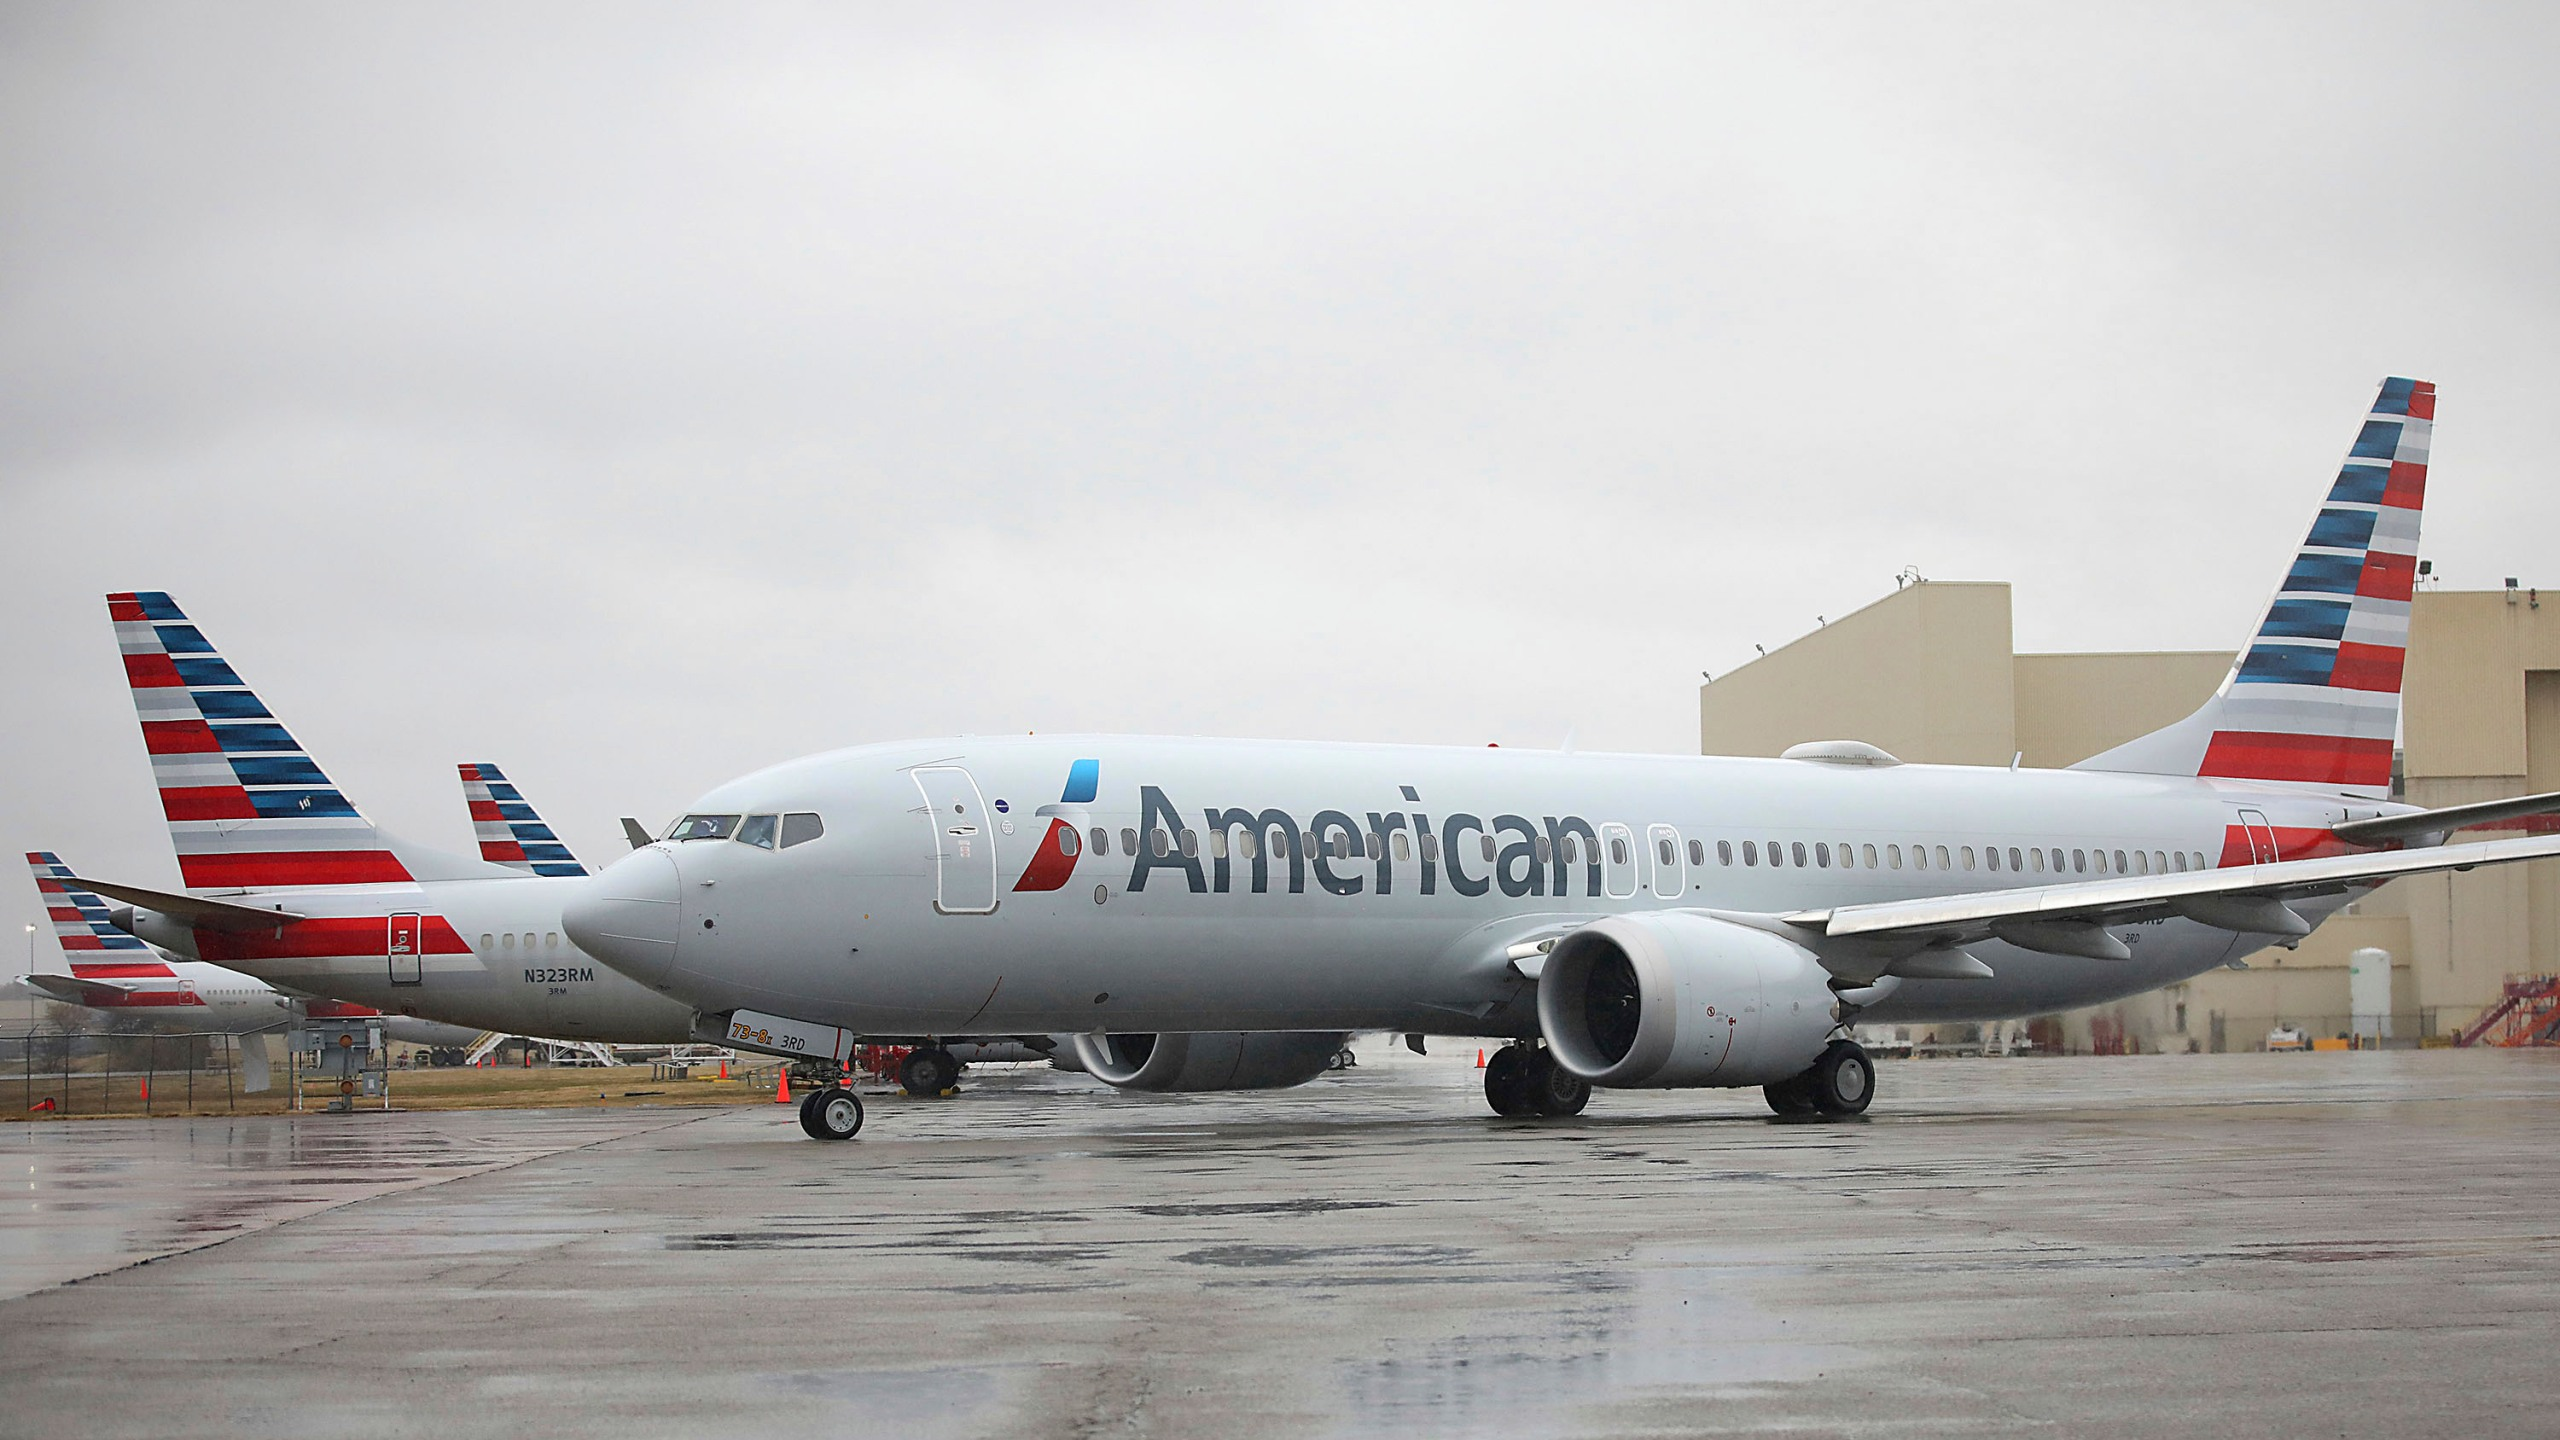 An American Airlines Boeing 737 Max taxis at Tulsa International Airport to fly to Dallas, Dec. 2, 2020, in Tulsa, Okla. (Mike Simons/Tulsa World via AP)